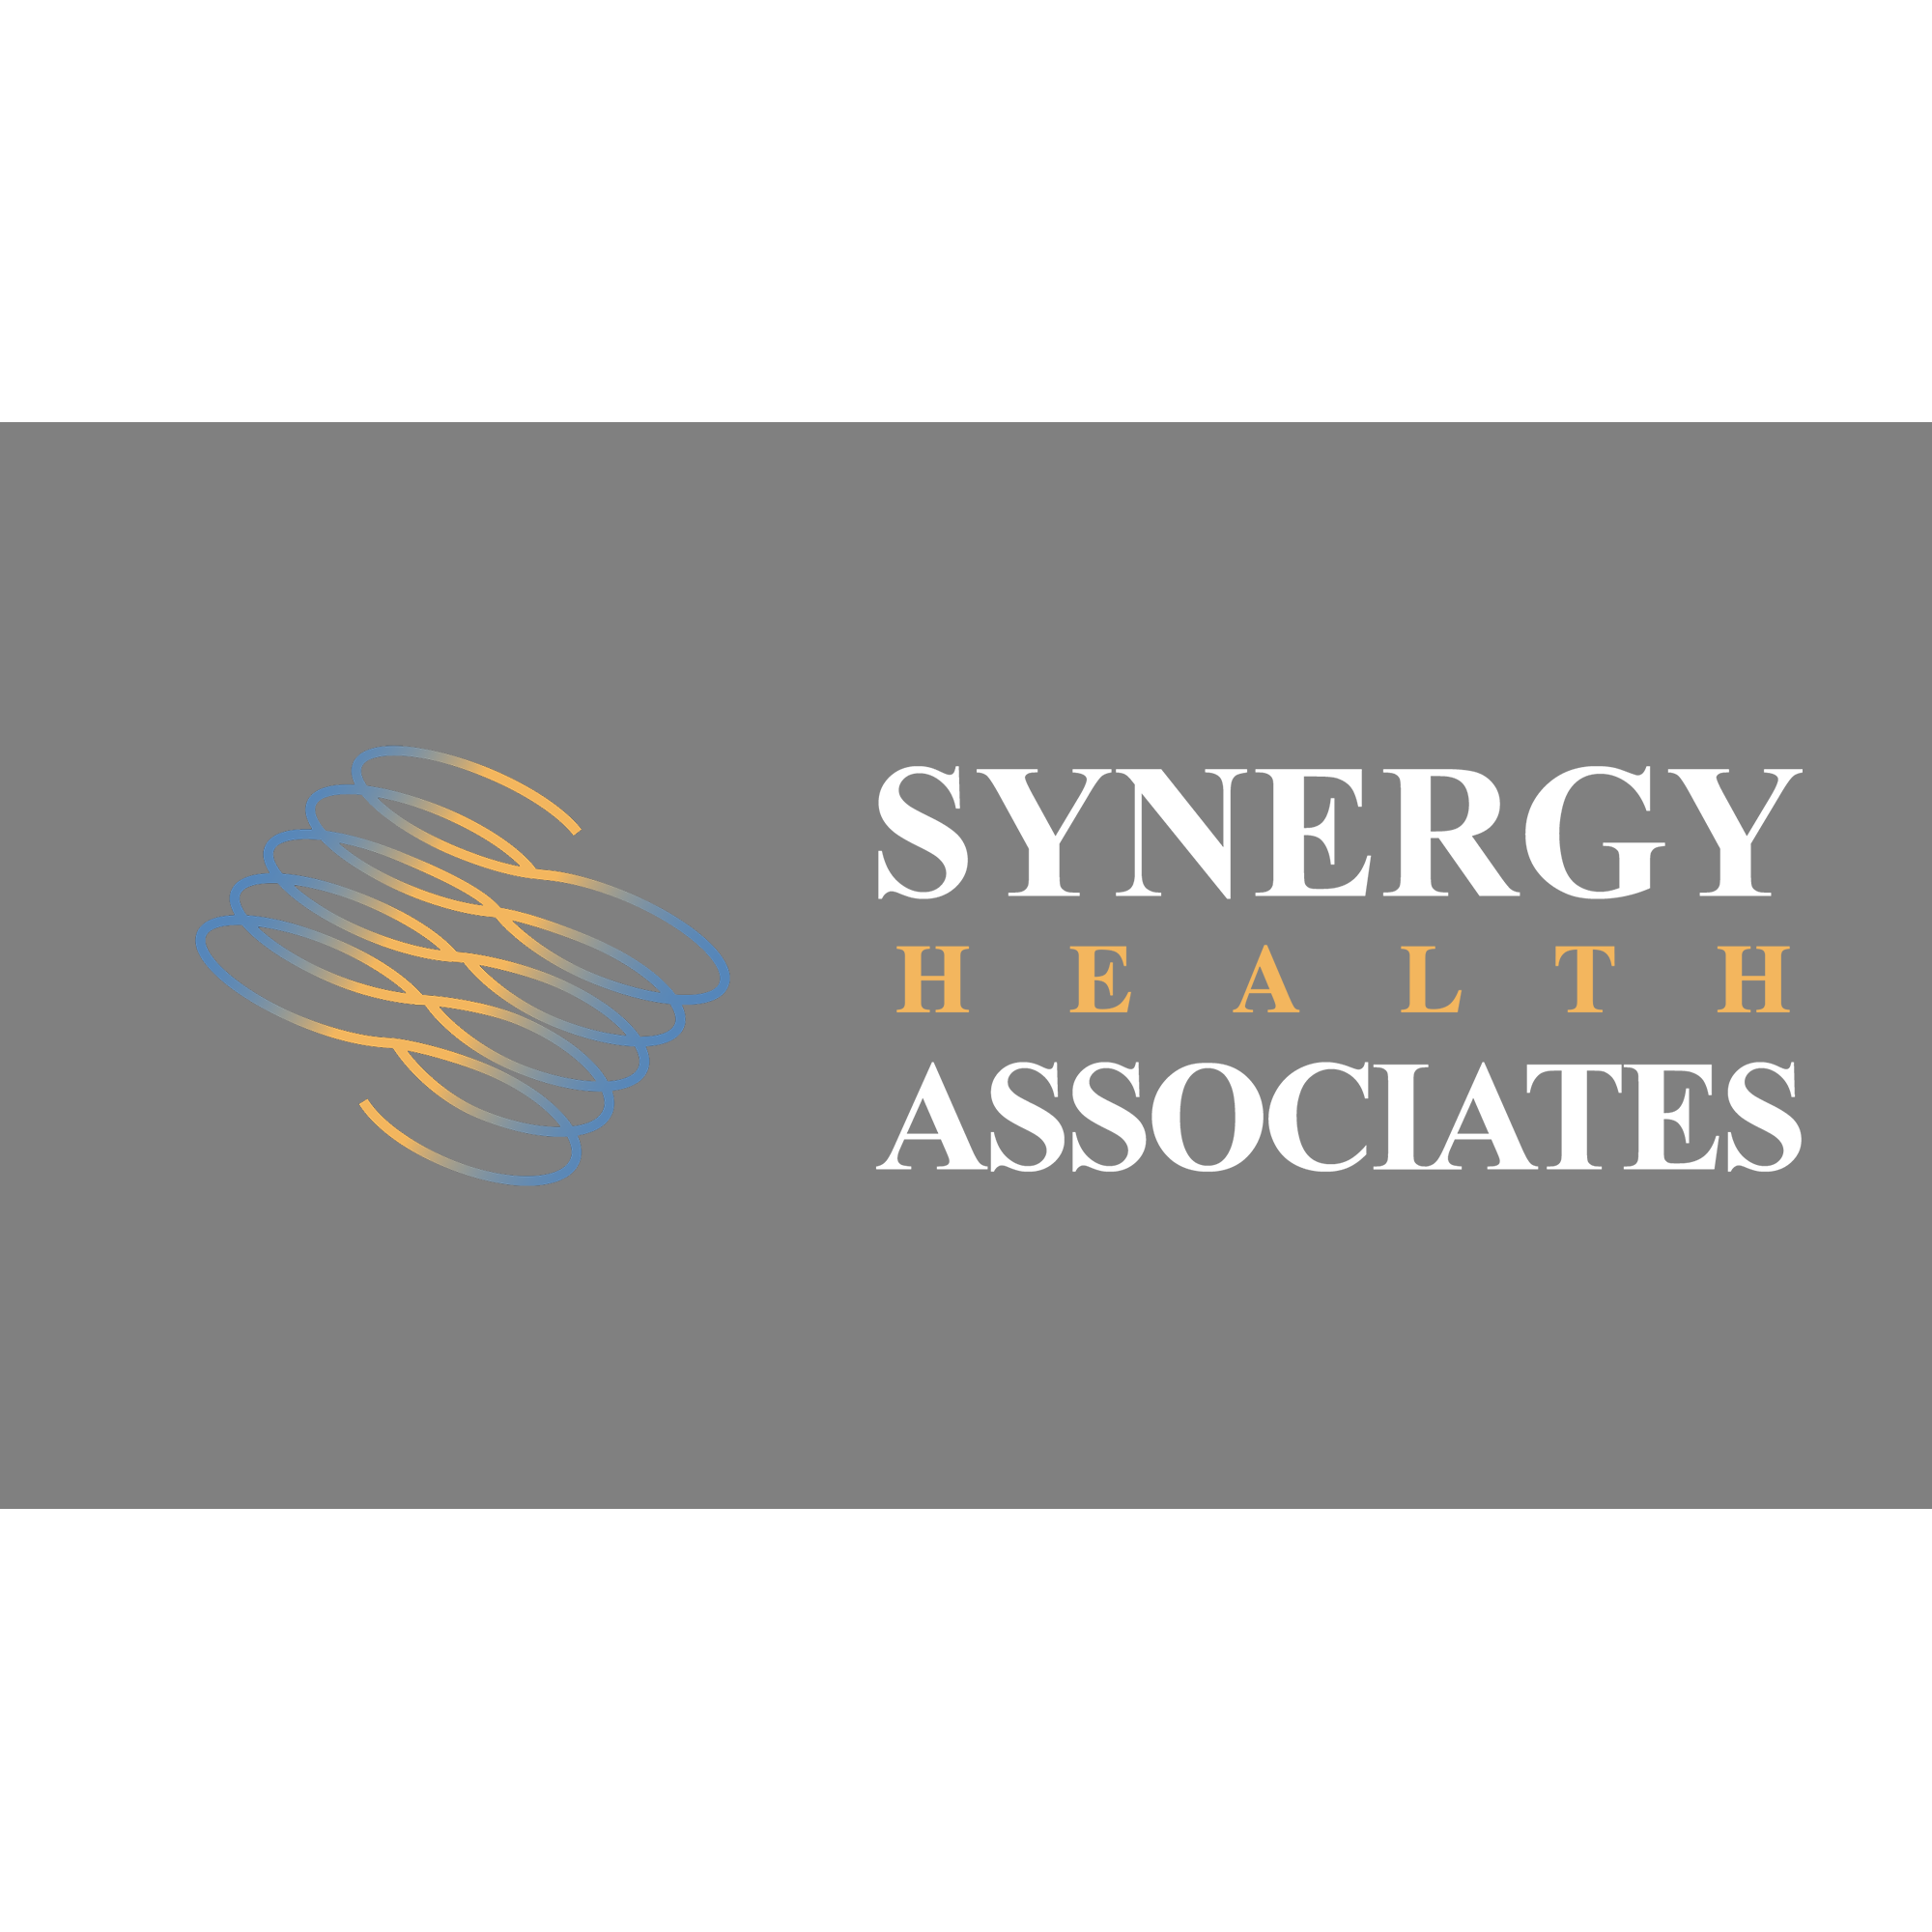 Synergy Health Associates